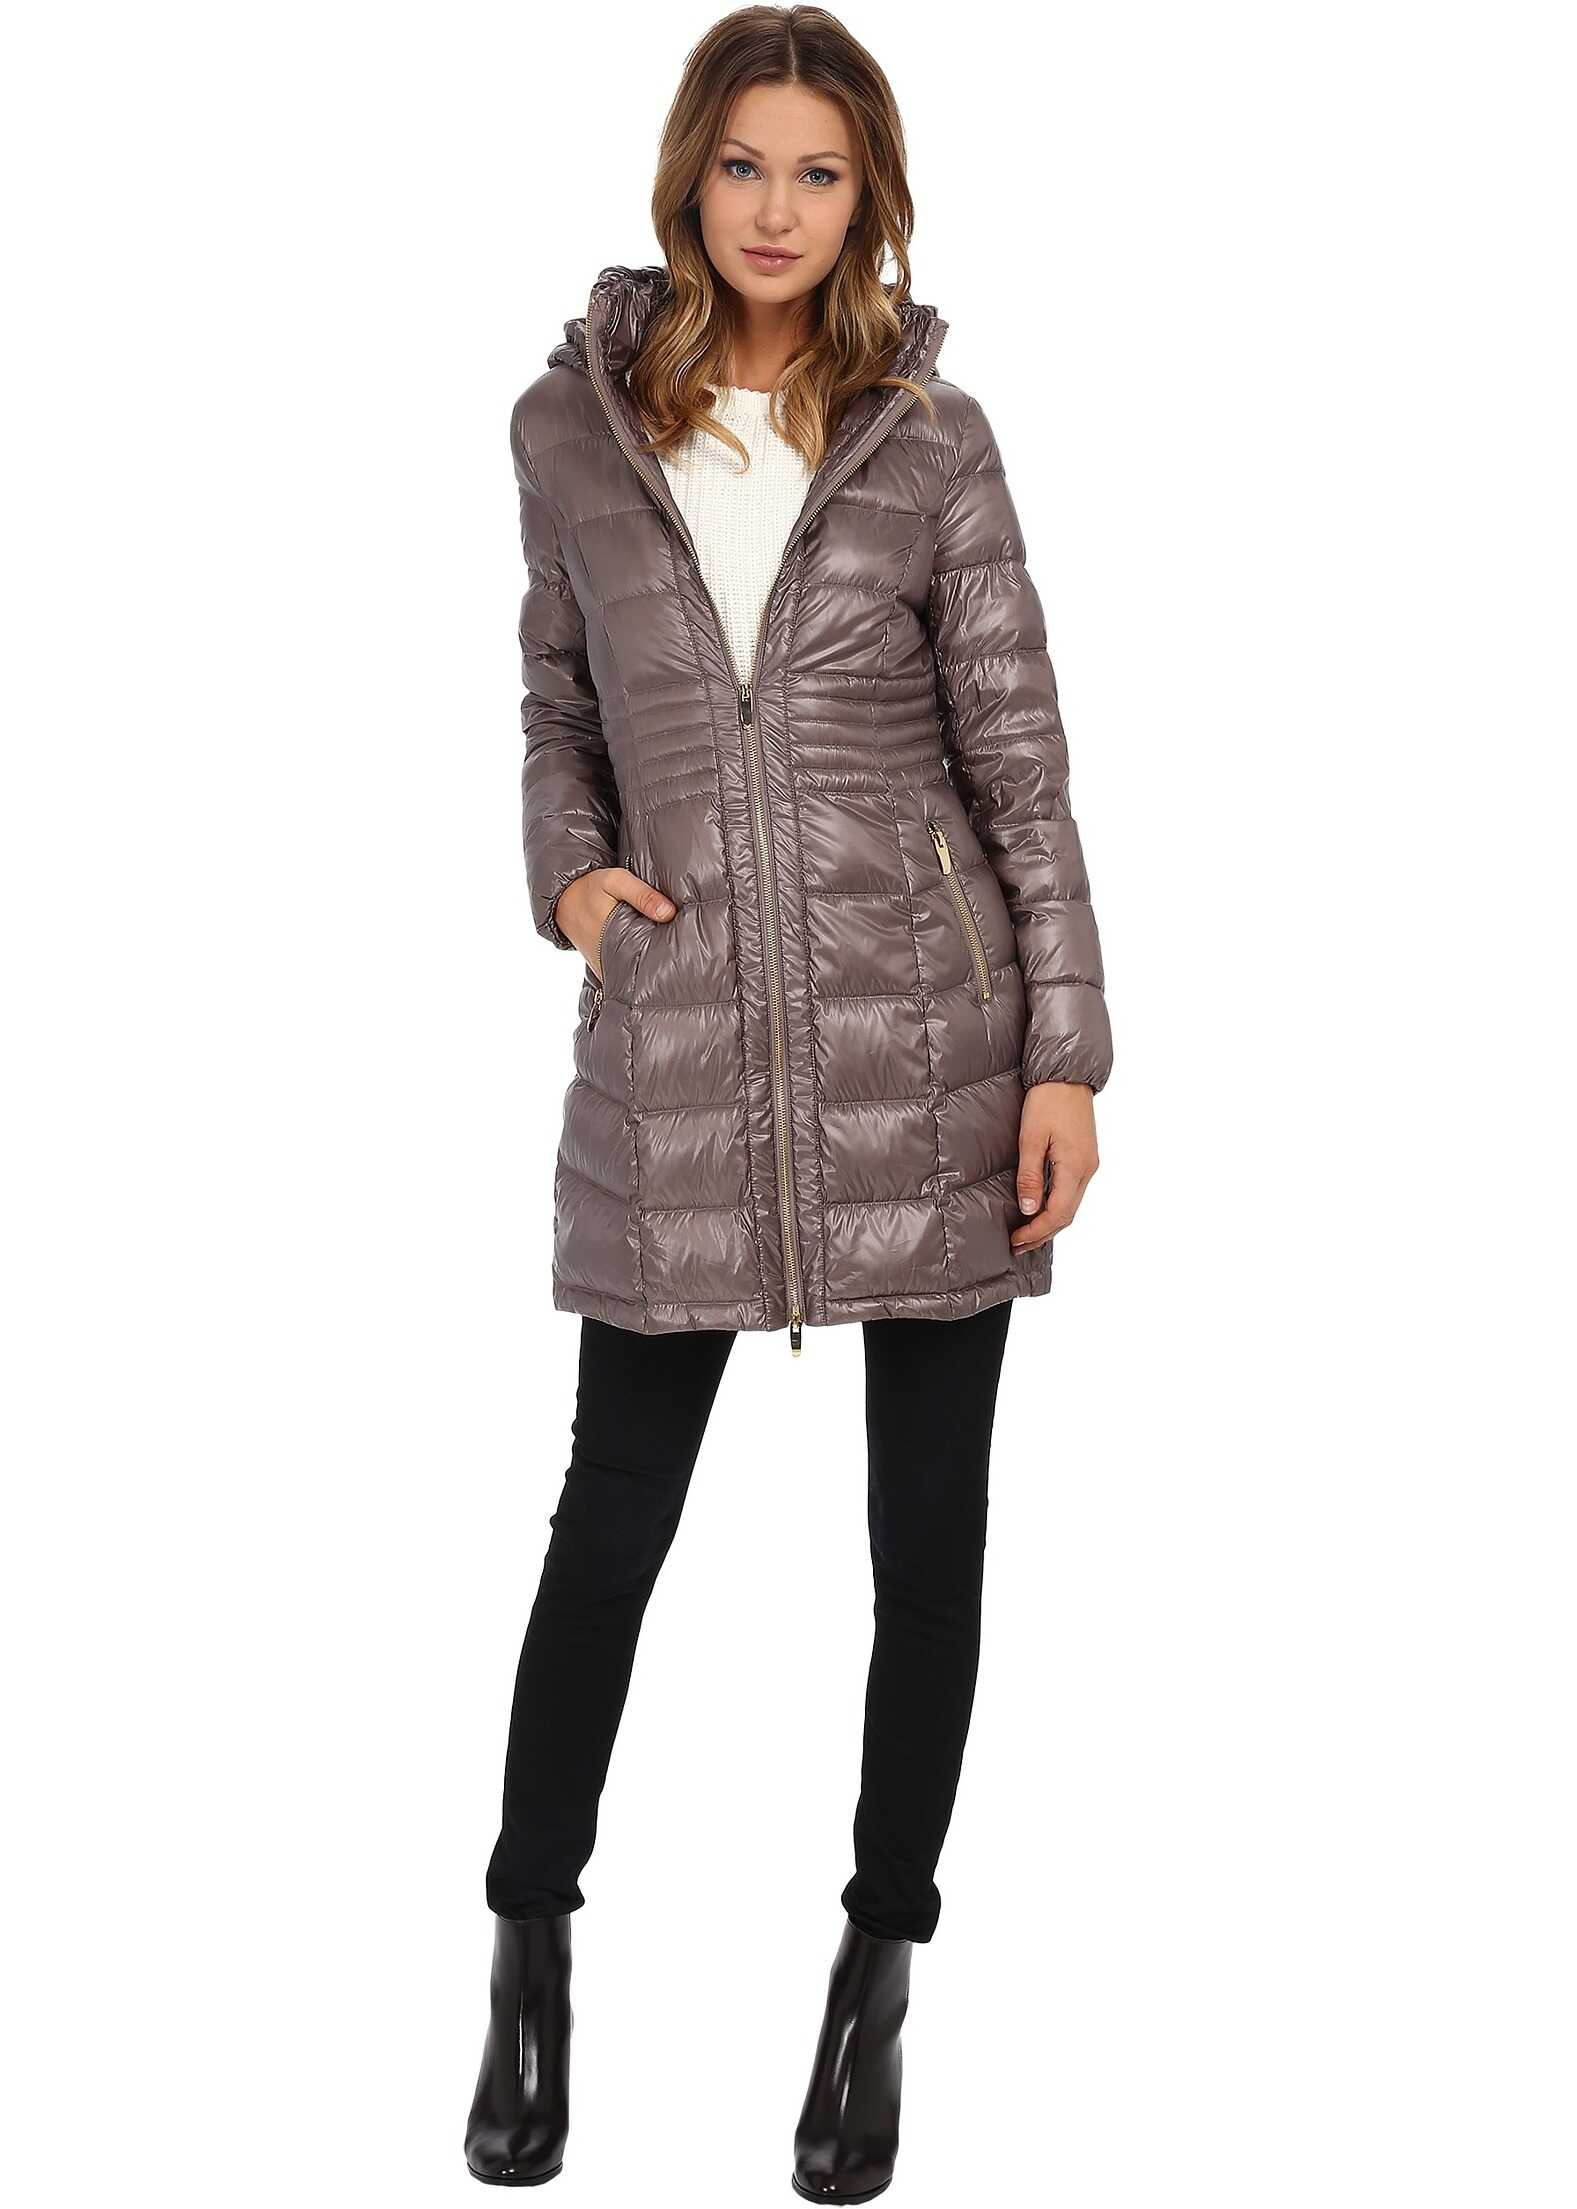 Via Spiga Metallic Hooded Packable Down Coat Desert